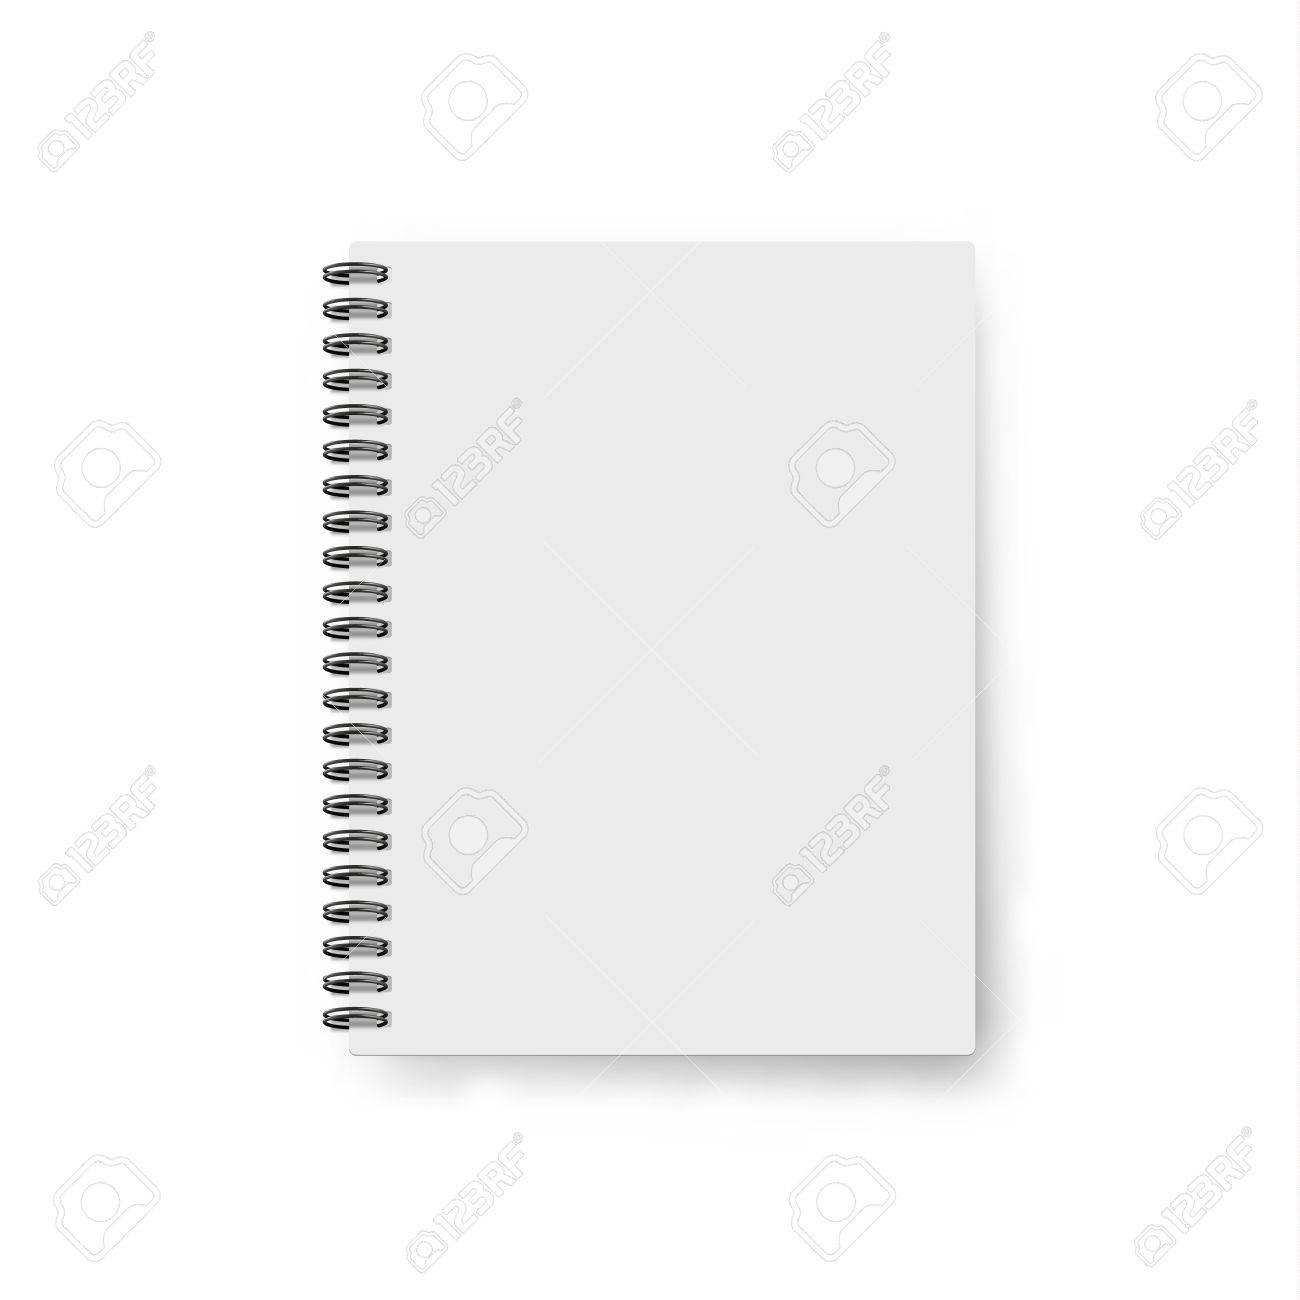 Realistic notebook template notebook blank cover design mock business diary realistic notebook template notebook blank cover design mock up notebook notebook realistic accmission Choice Image